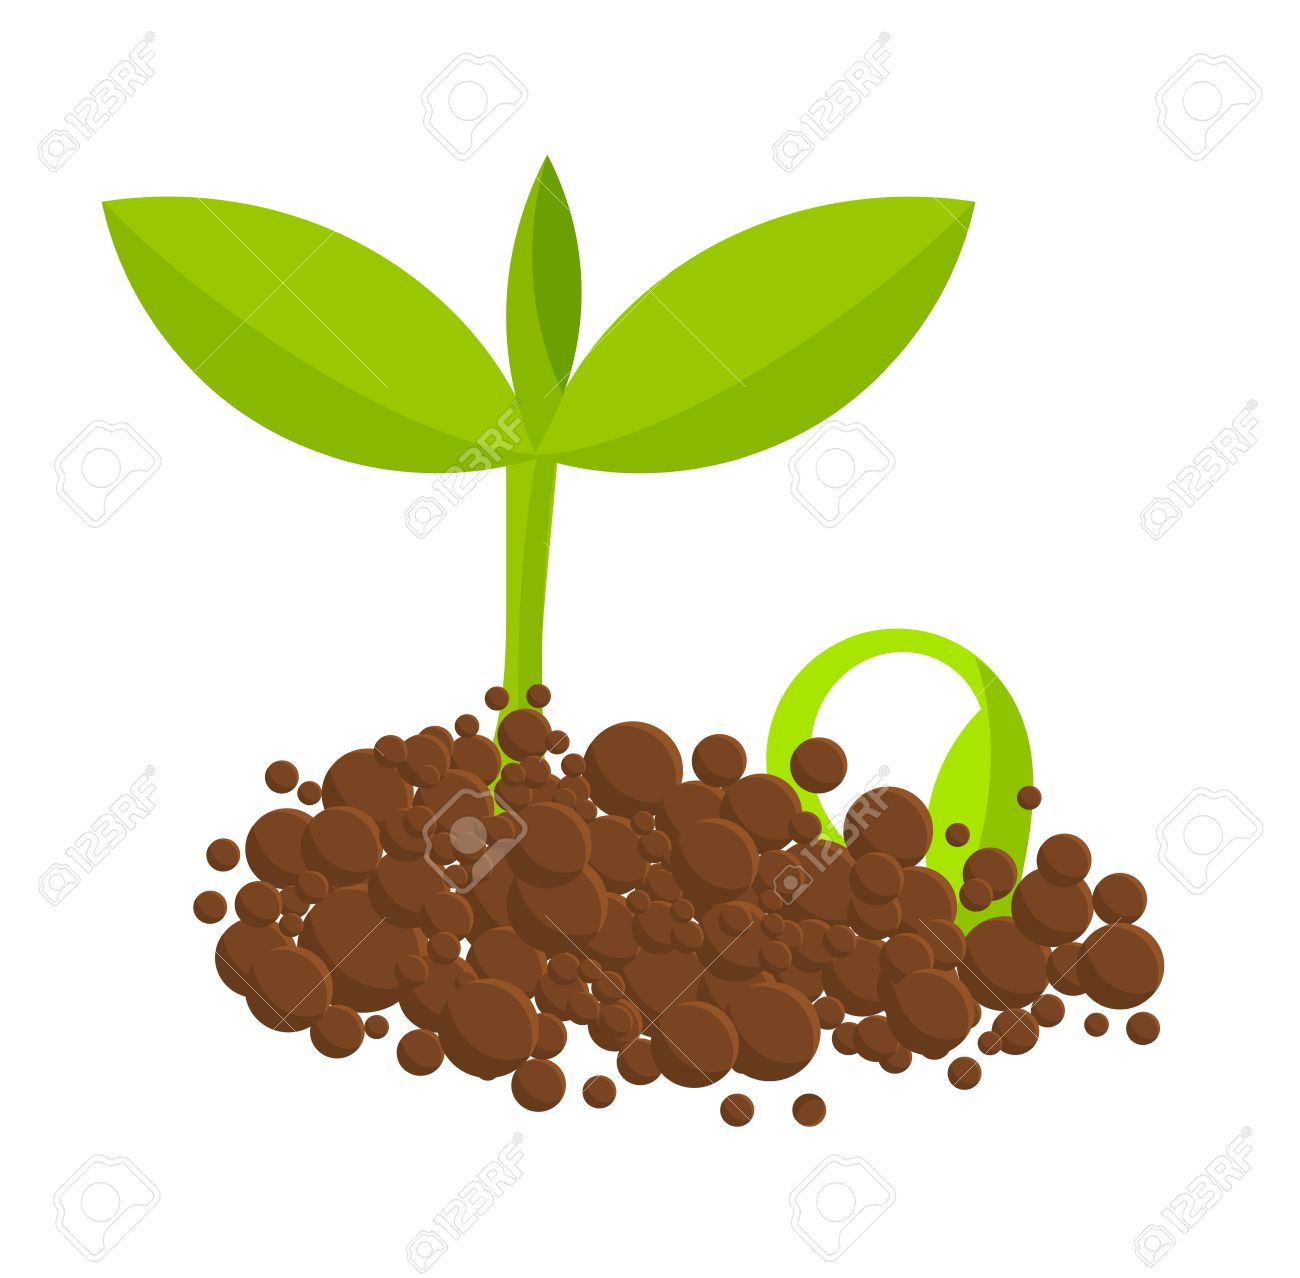 Germinating Plants From Ground. Vector Illustration Royalty Free.